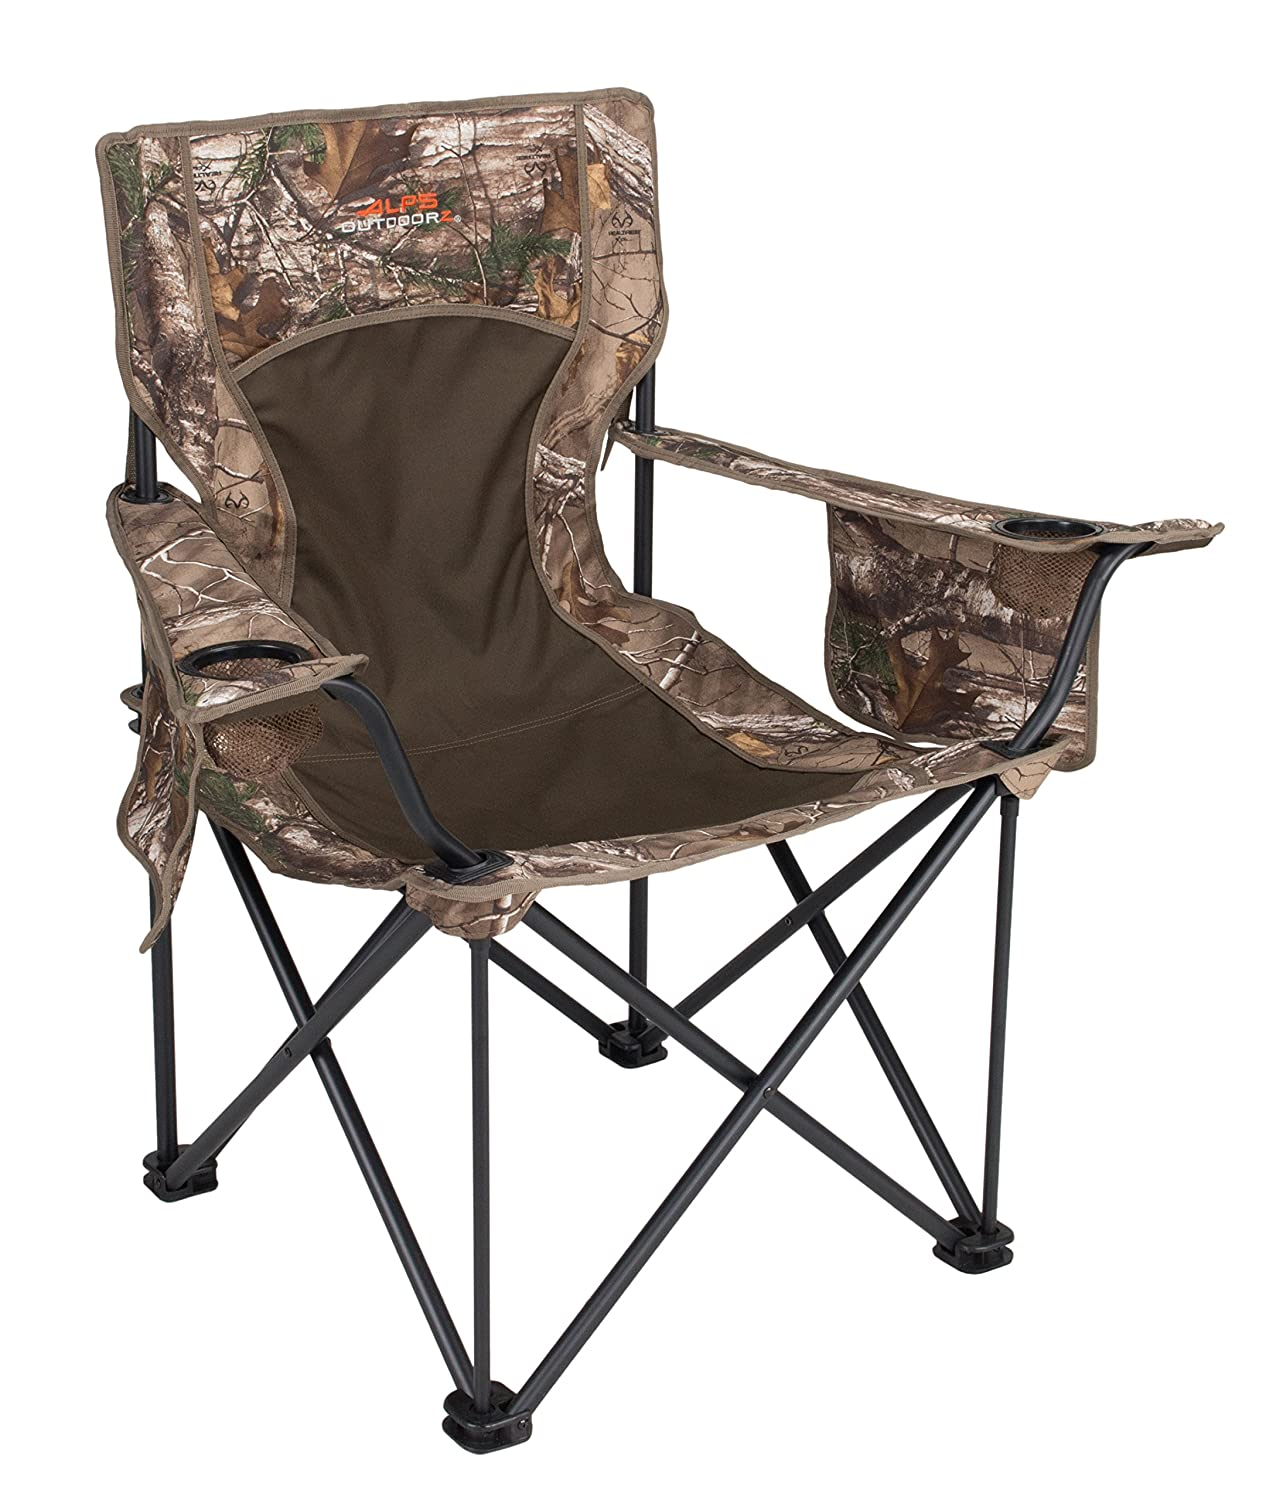 amazon com alps outdoorz king kong chair realtree xtra